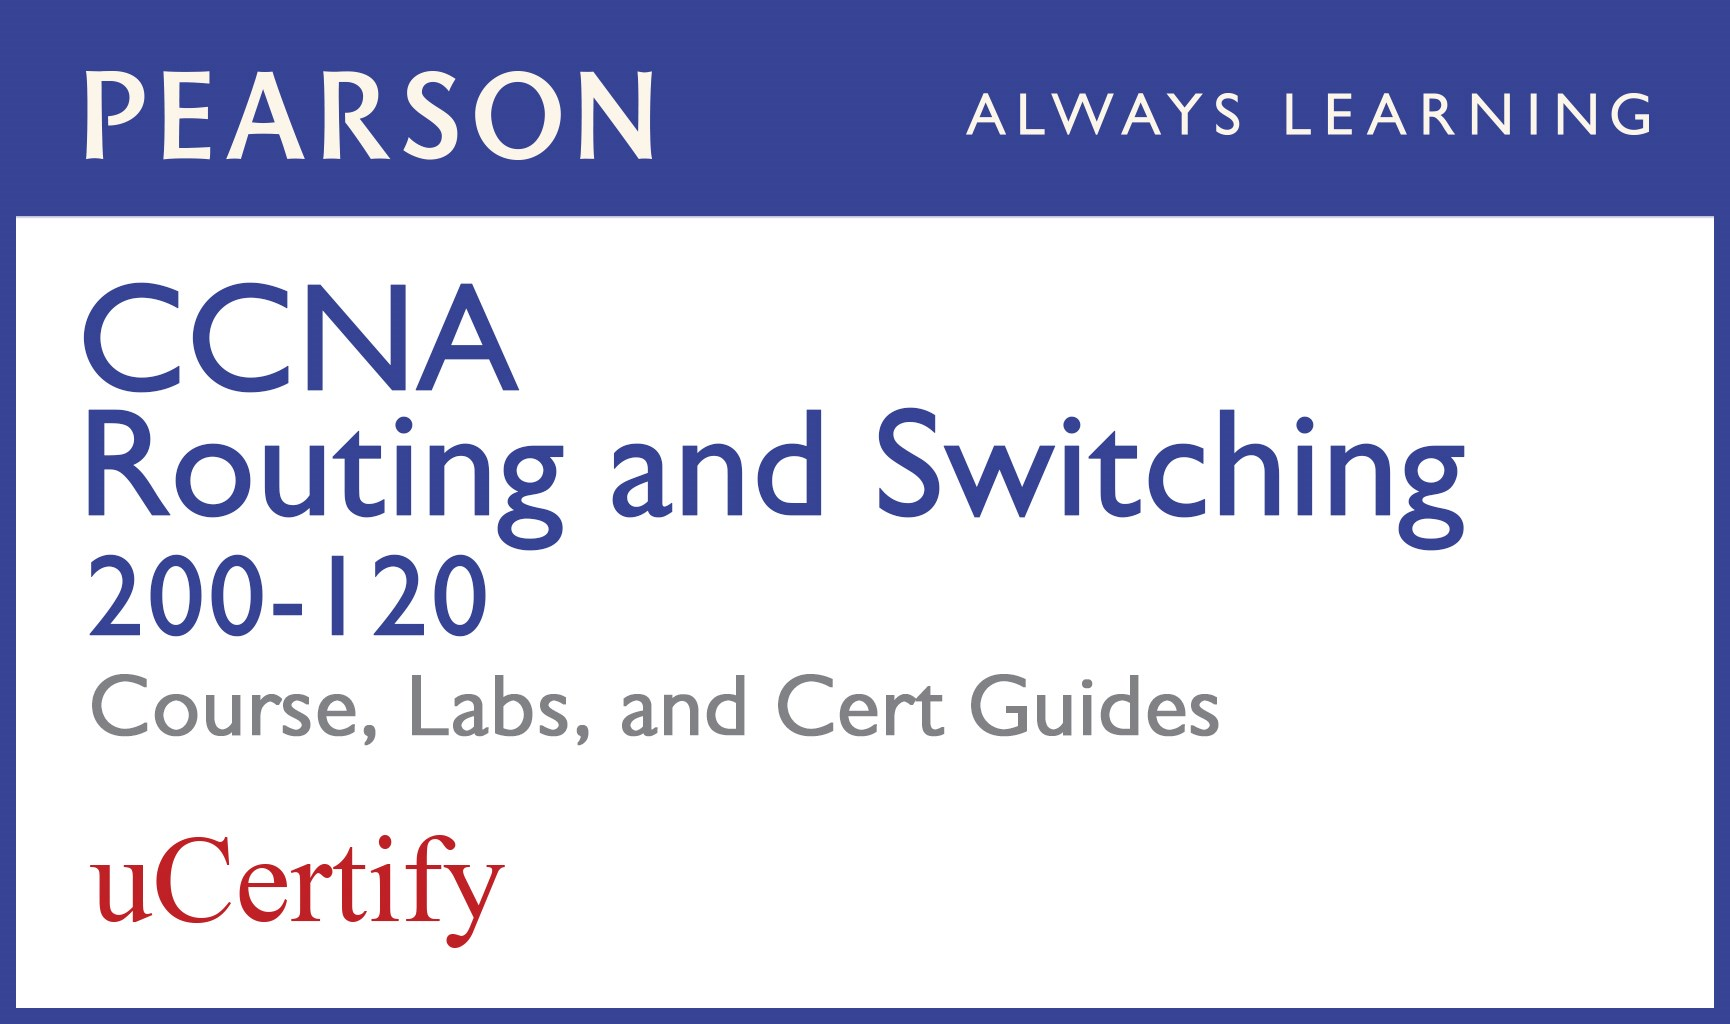 CCNA R&S 200-120 Library Pearson uCertify Course, Network Simulator, and Textbook Bundle